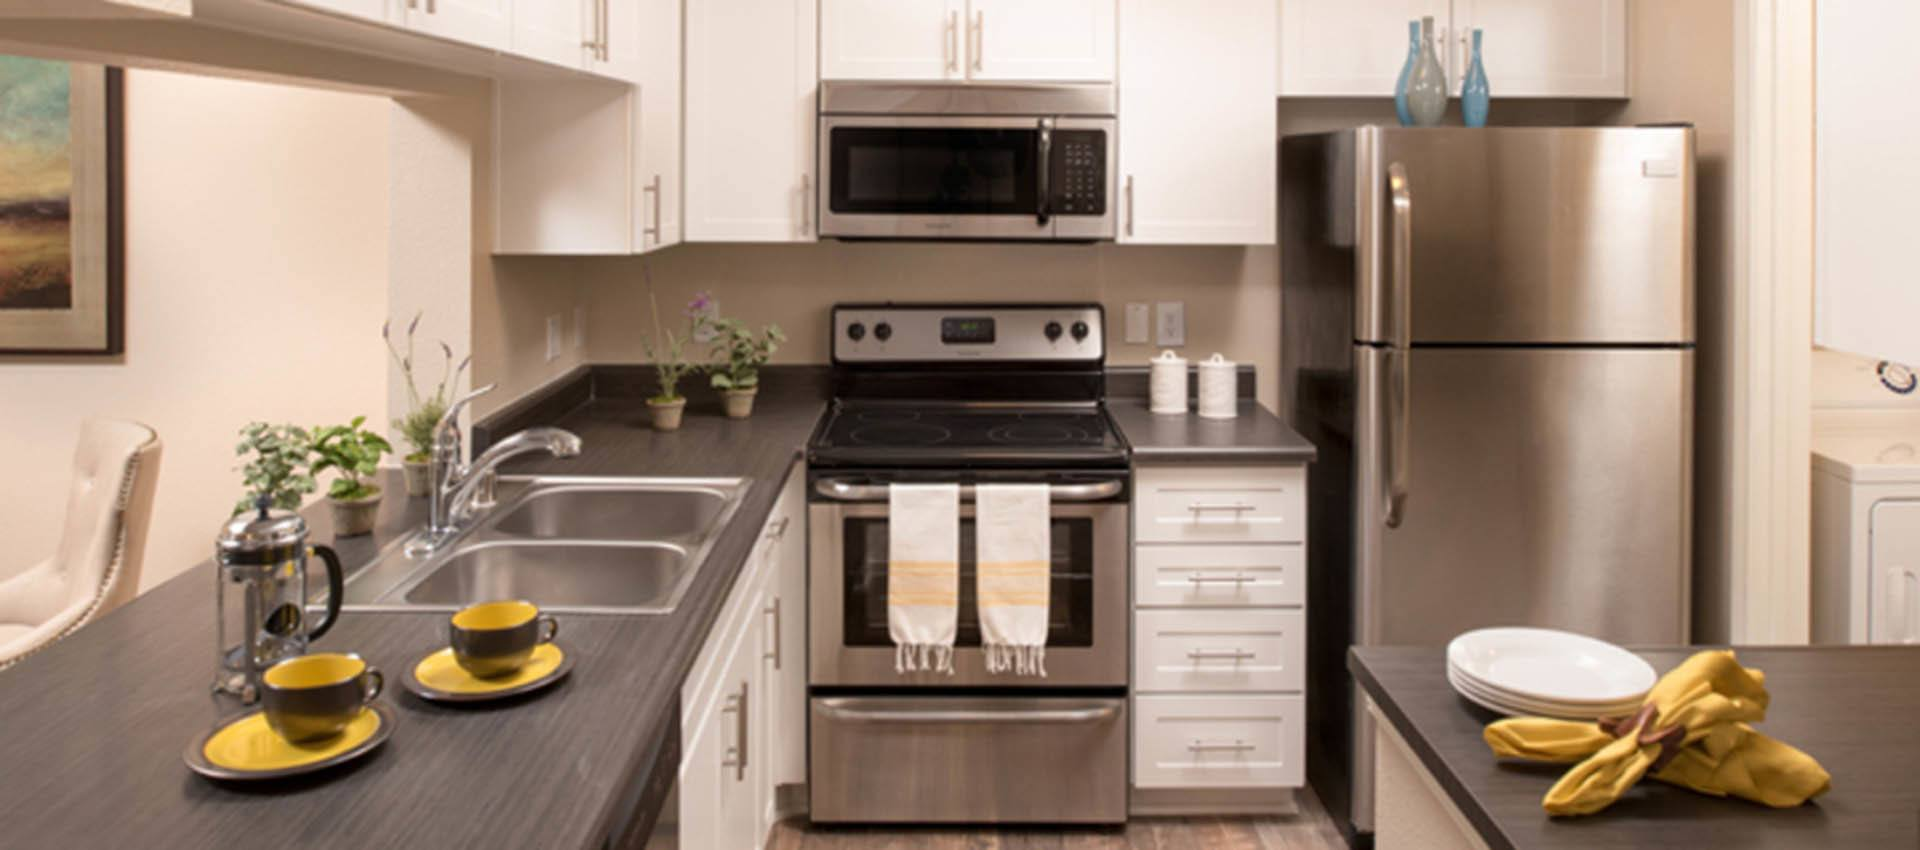 Luxury Kitchen With Stainless Appliances at Paloma Summit Condominium Rentals in Foothill Ranch, CA